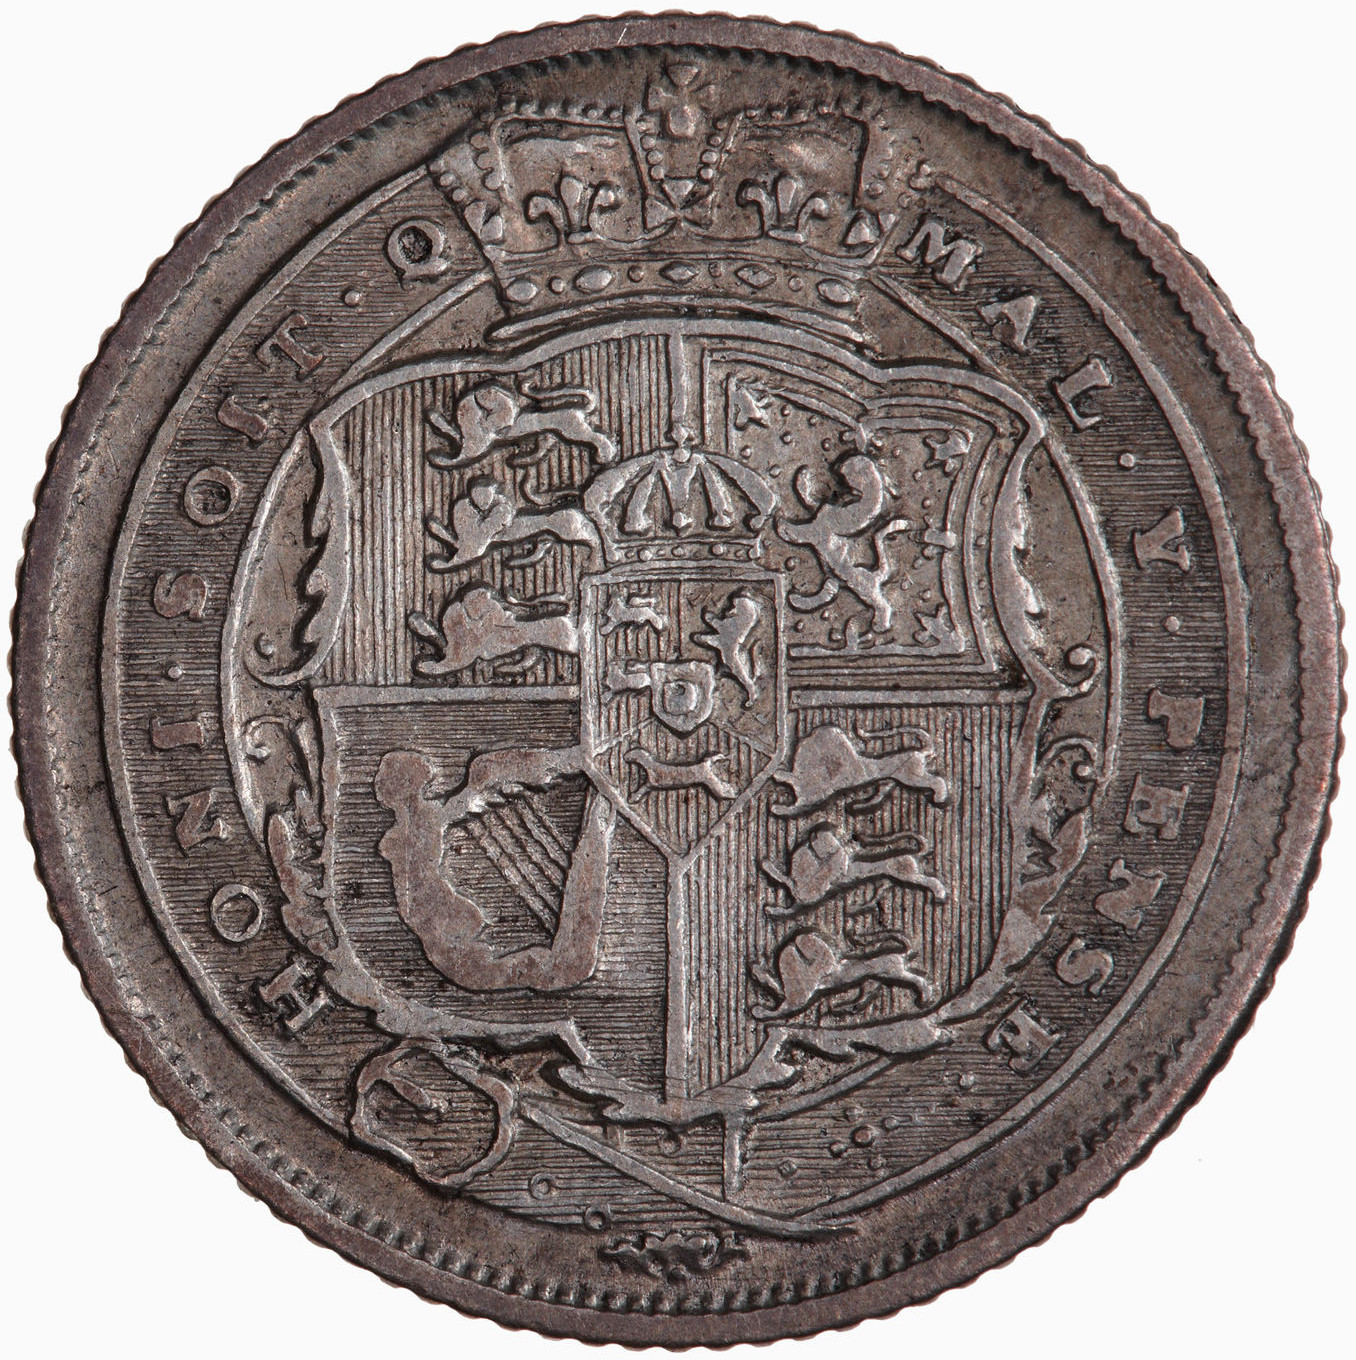 Sixpence: Photo Coin - Sixpence, George III, Great Britain, 1817